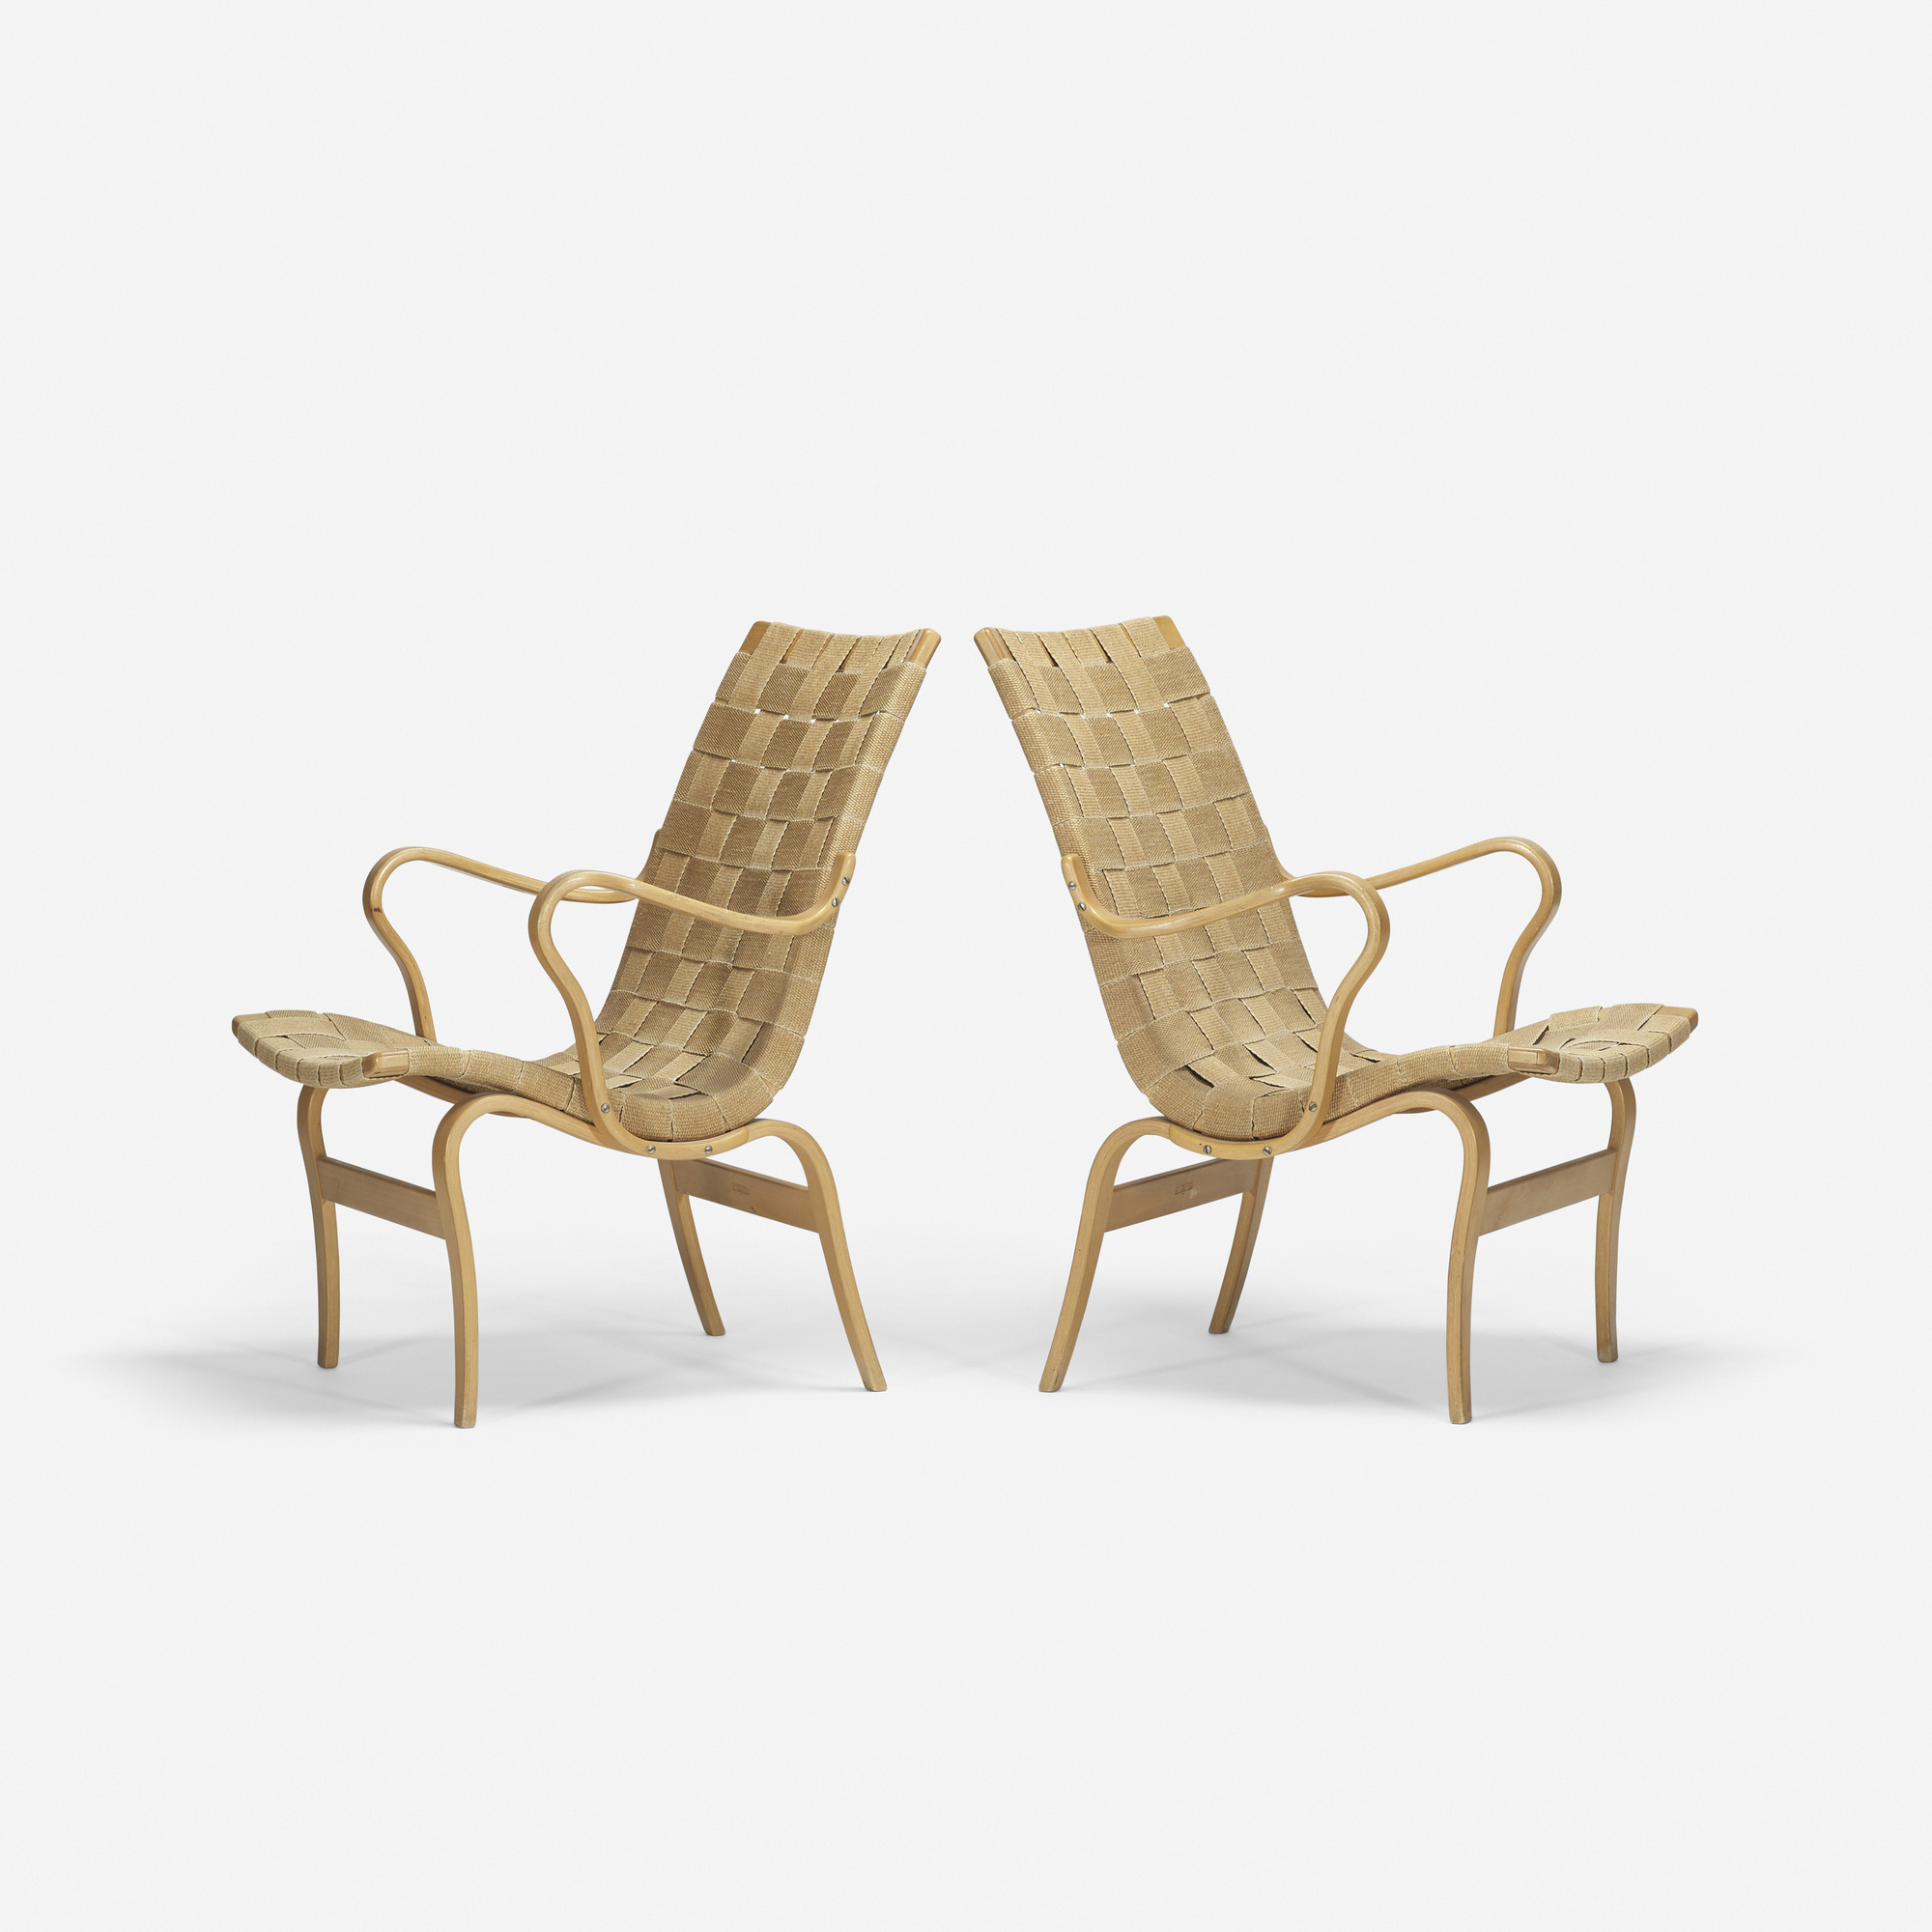 540: Bruno Mathsson / Eva chairs, pair (1 of 2)